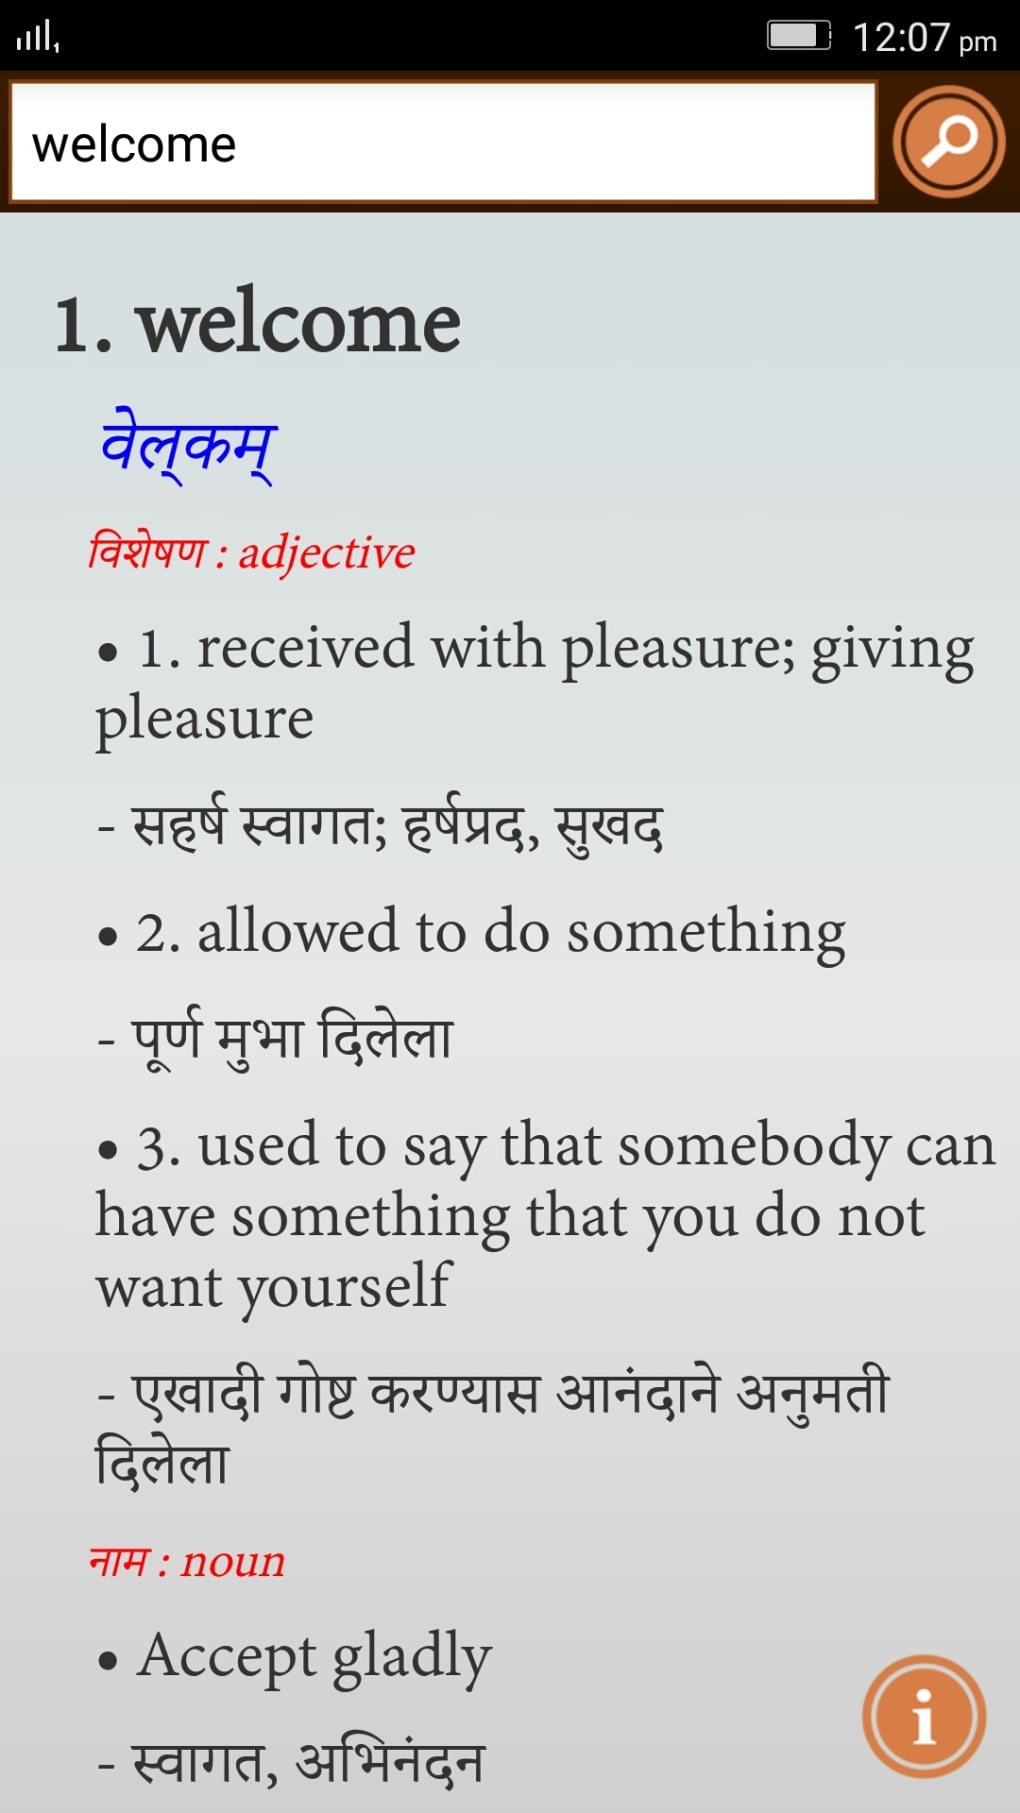 English to Marathi Dictionary for Android - Download